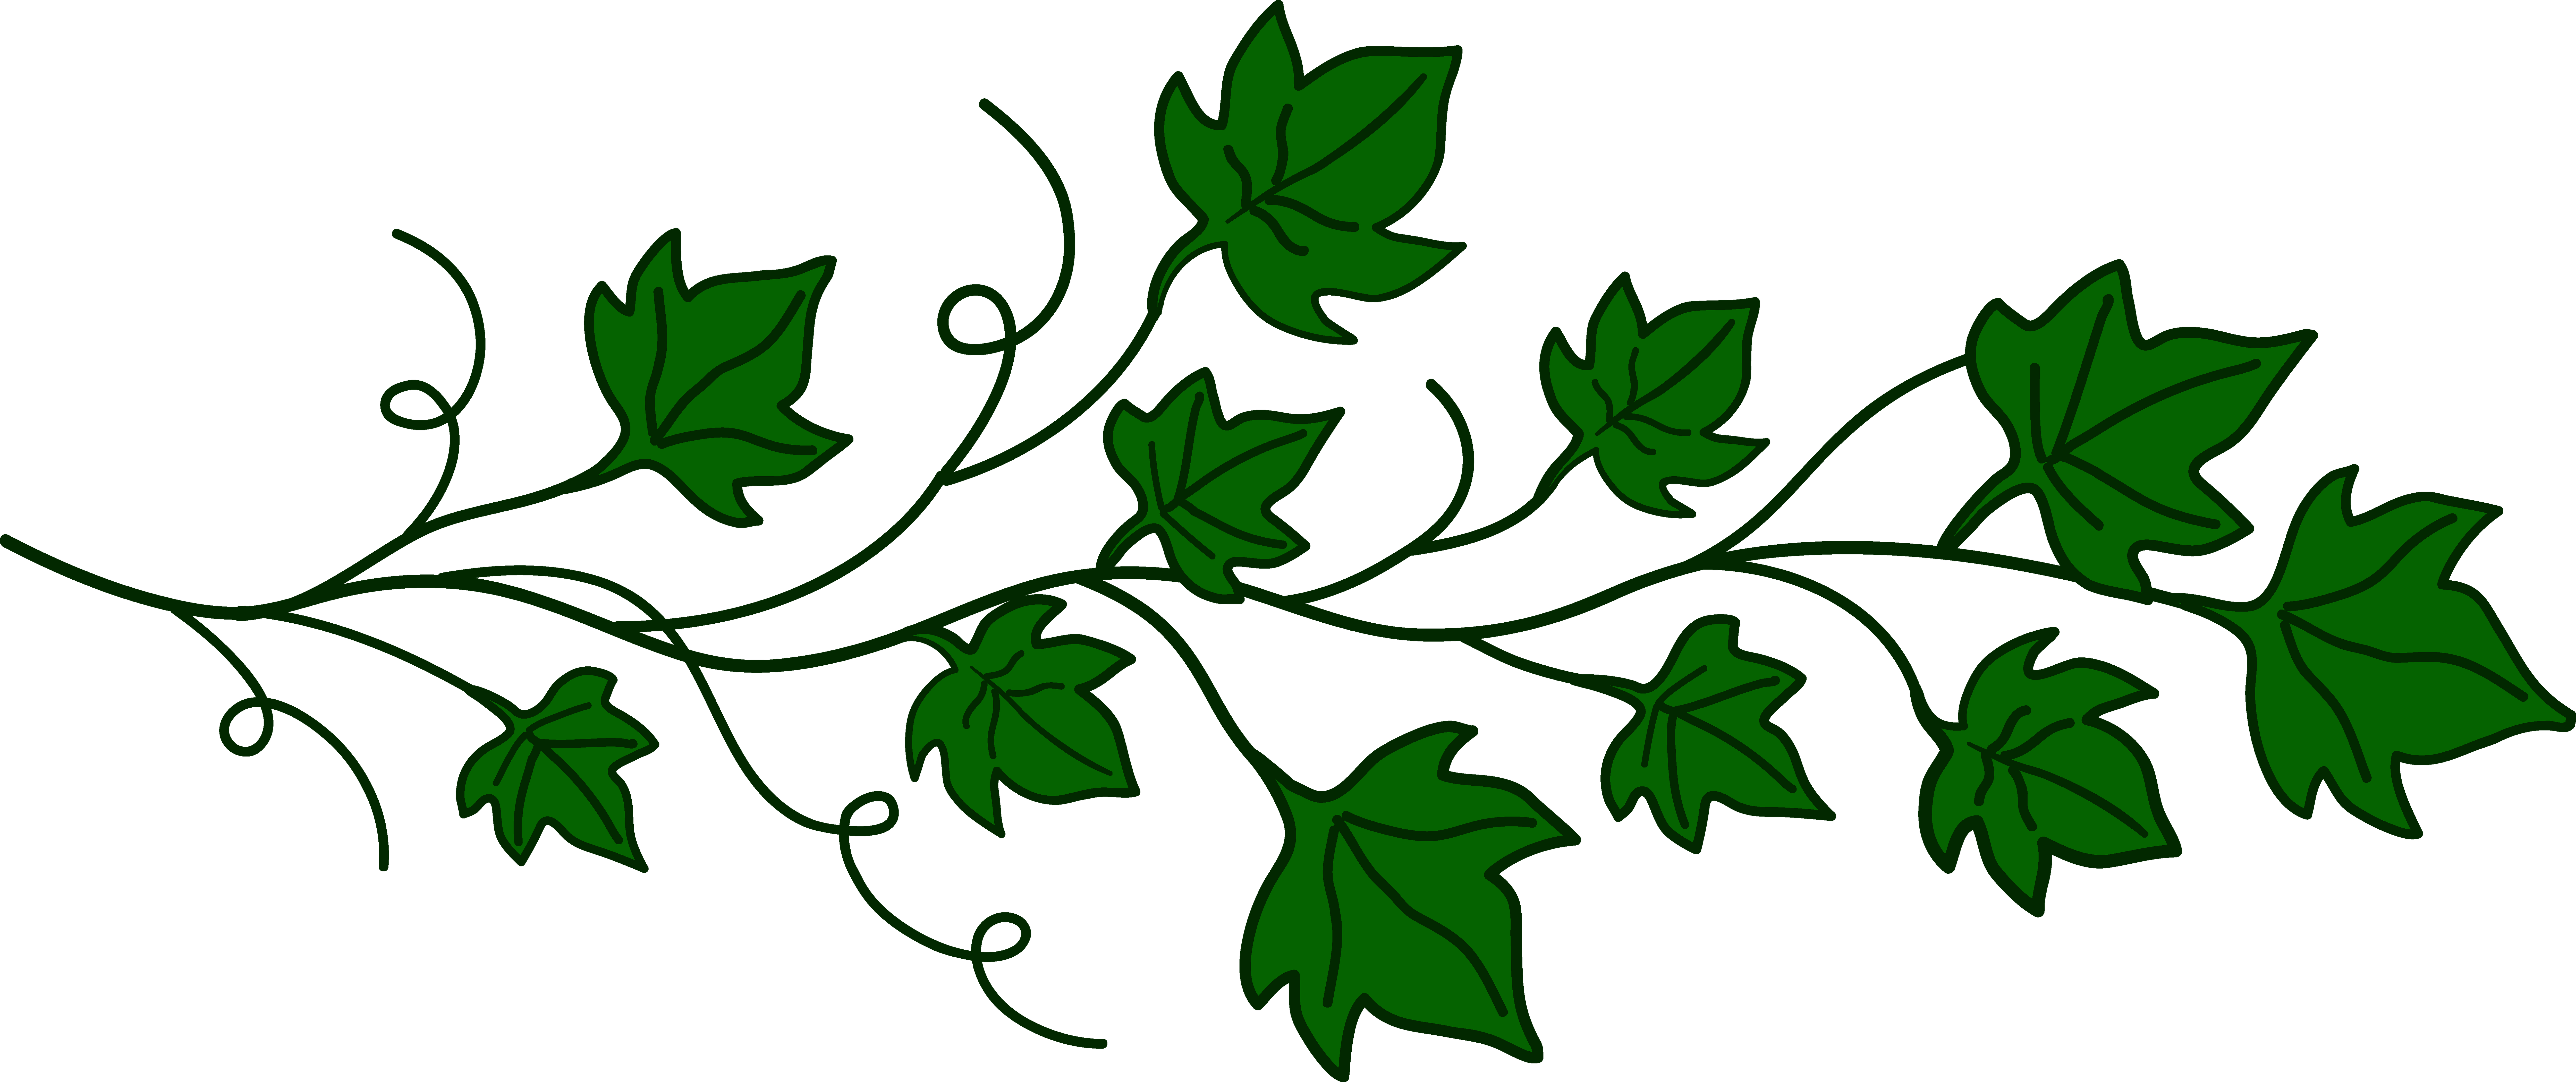 Ivy clipart. Leaves